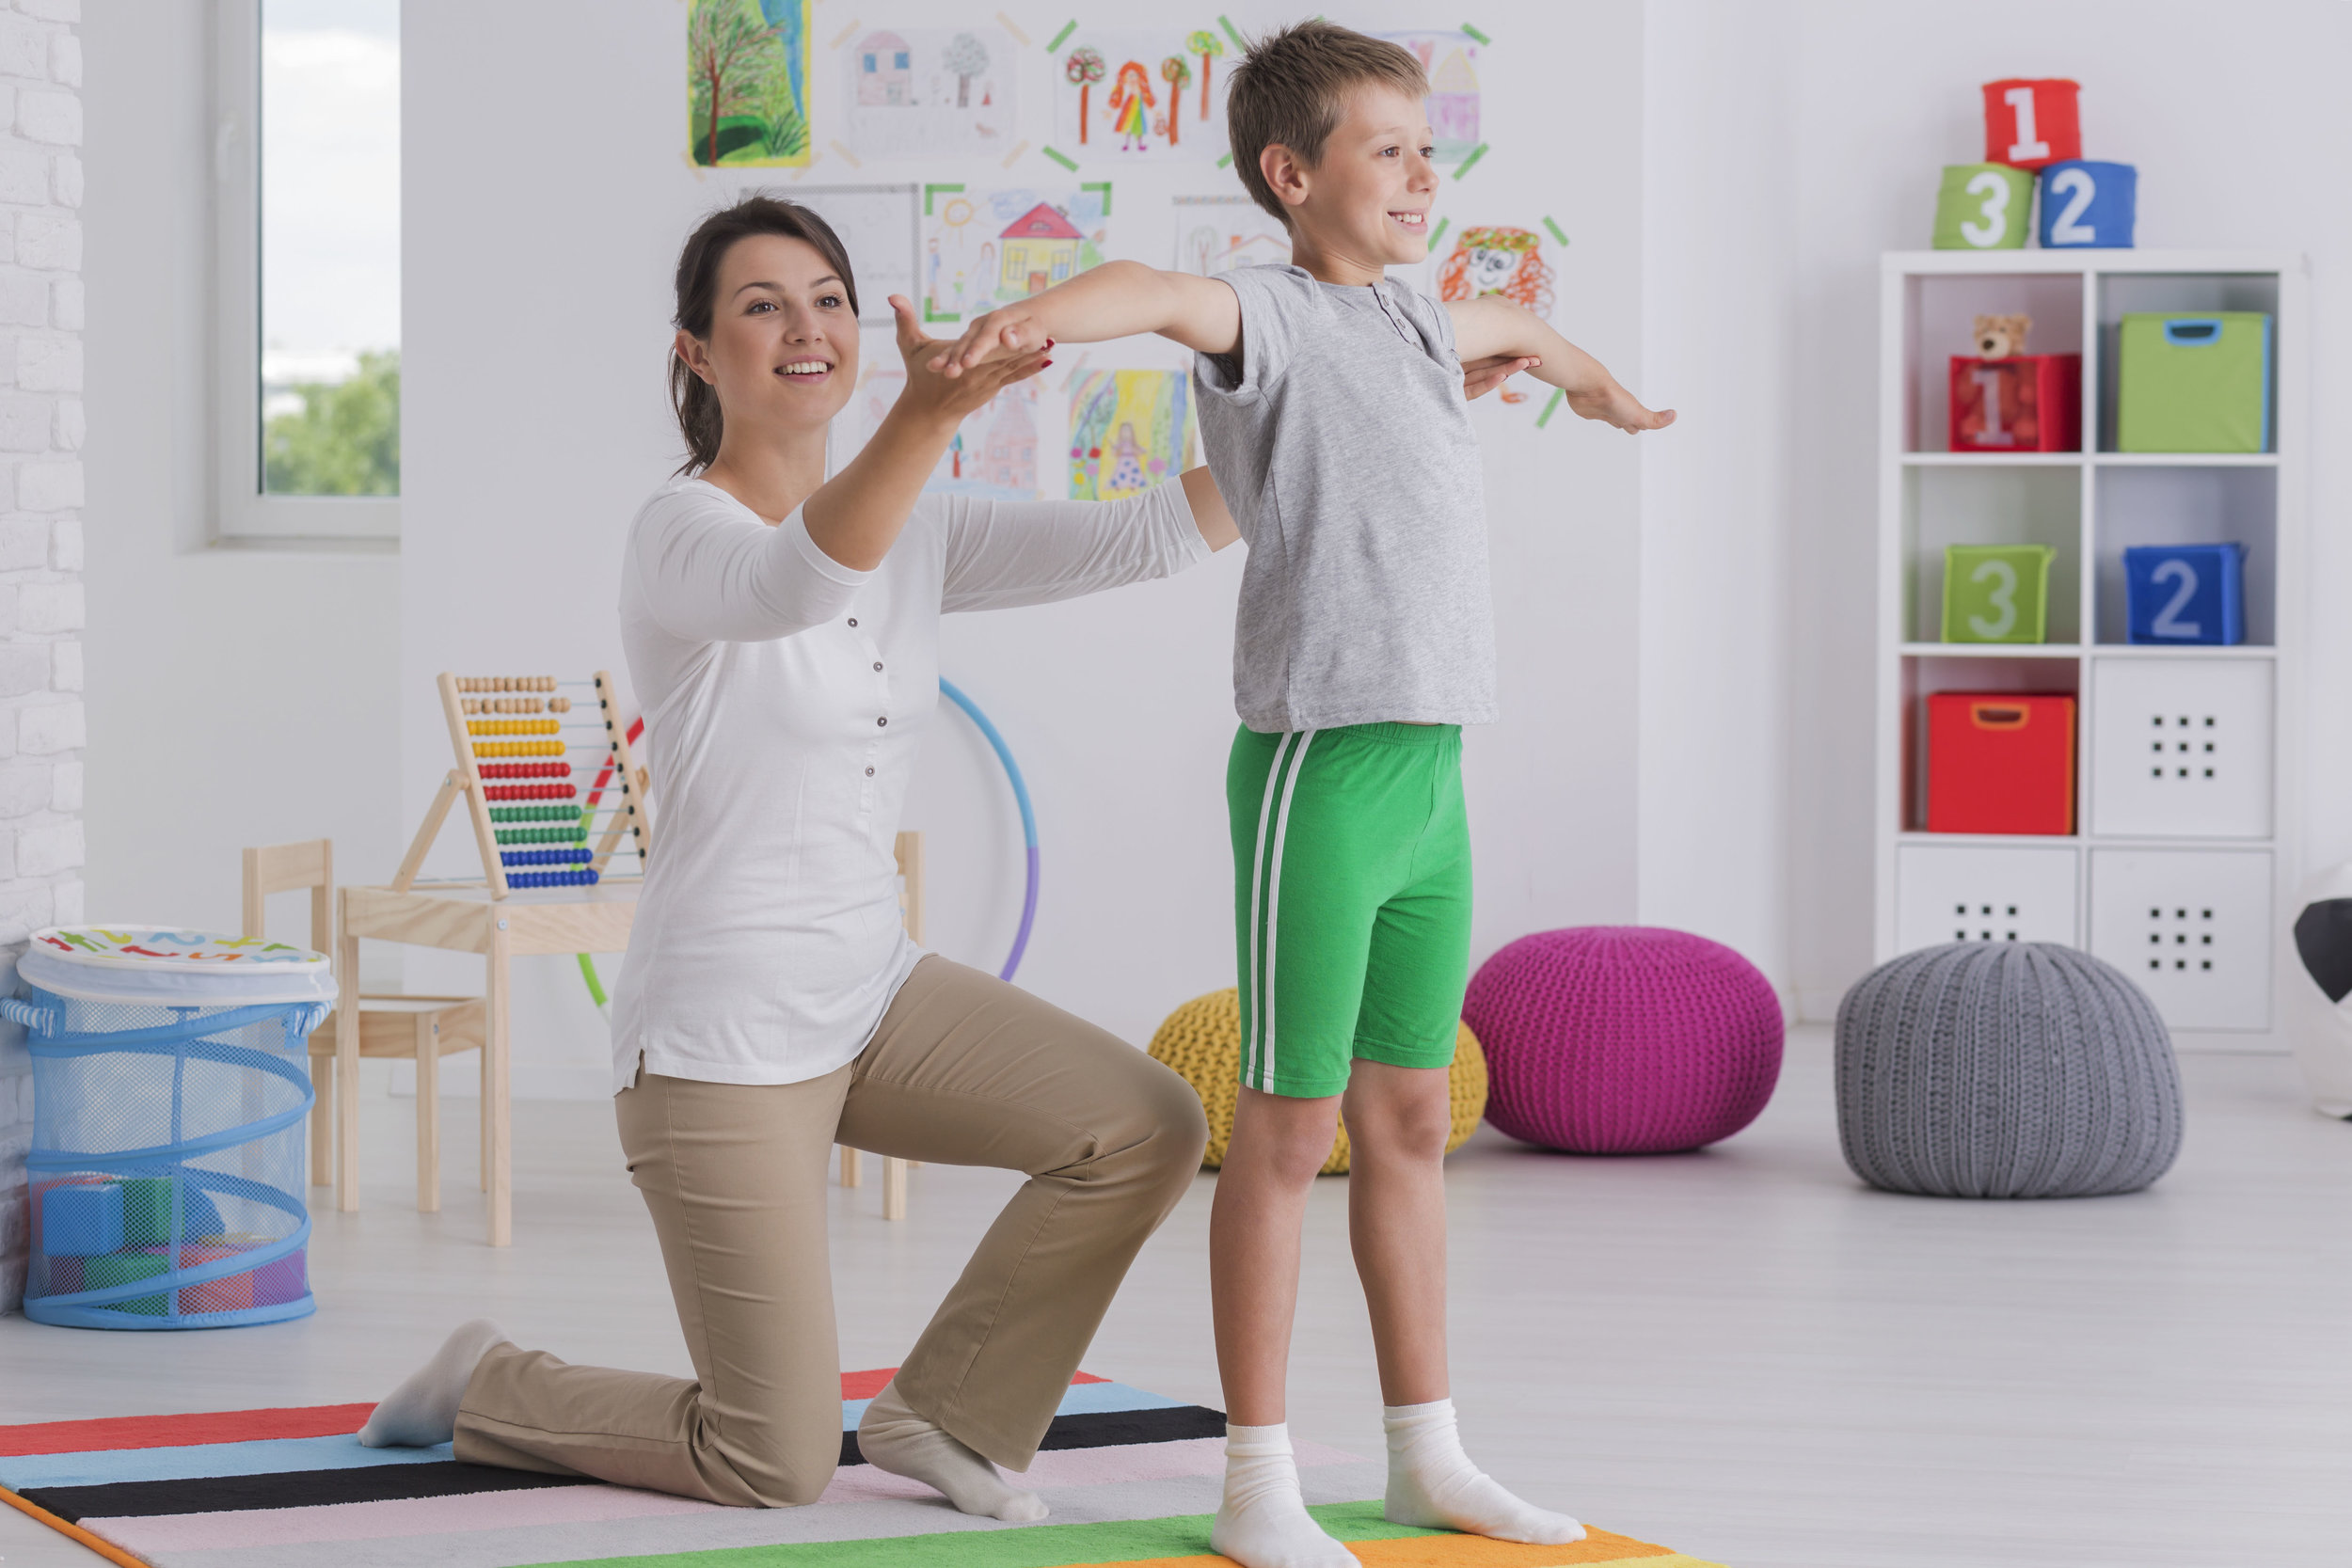 physiotherapist-exercising-with-a-school-boy-P856T63.jpg